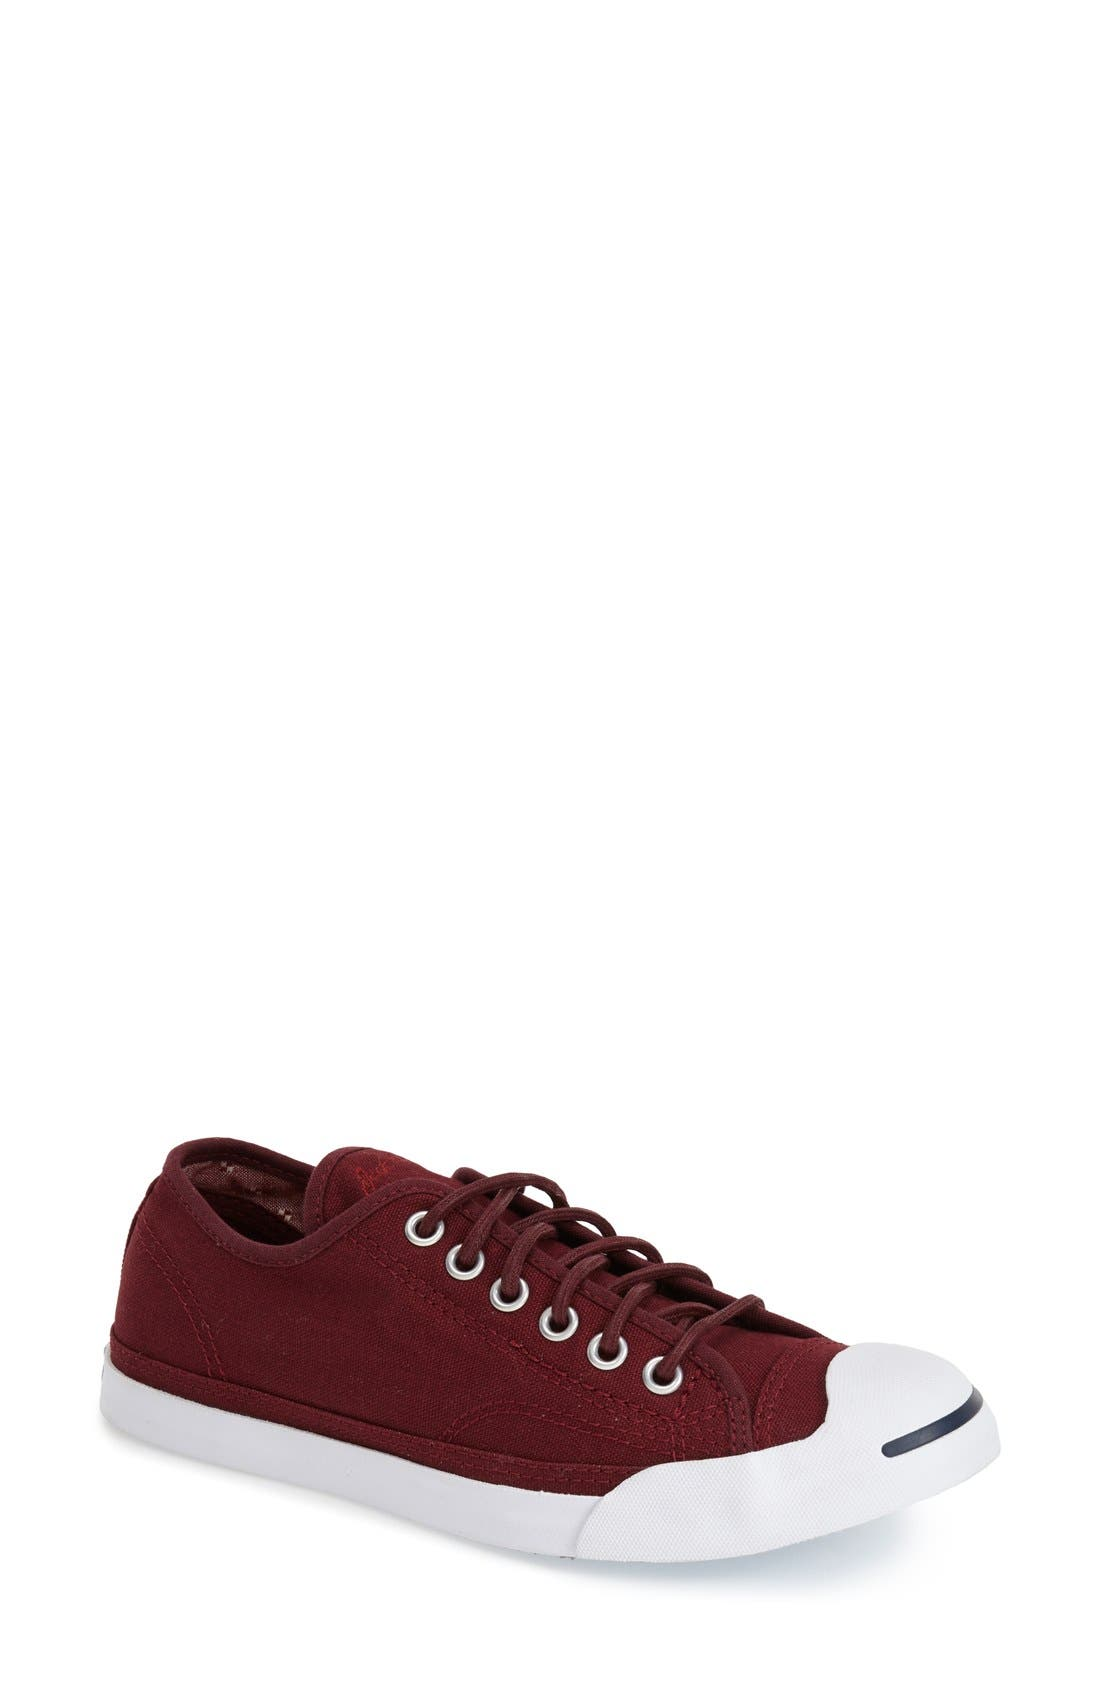 'Jack Purcell' Low Top Slip On Sneaker,                             Main thumbnail 3, color,